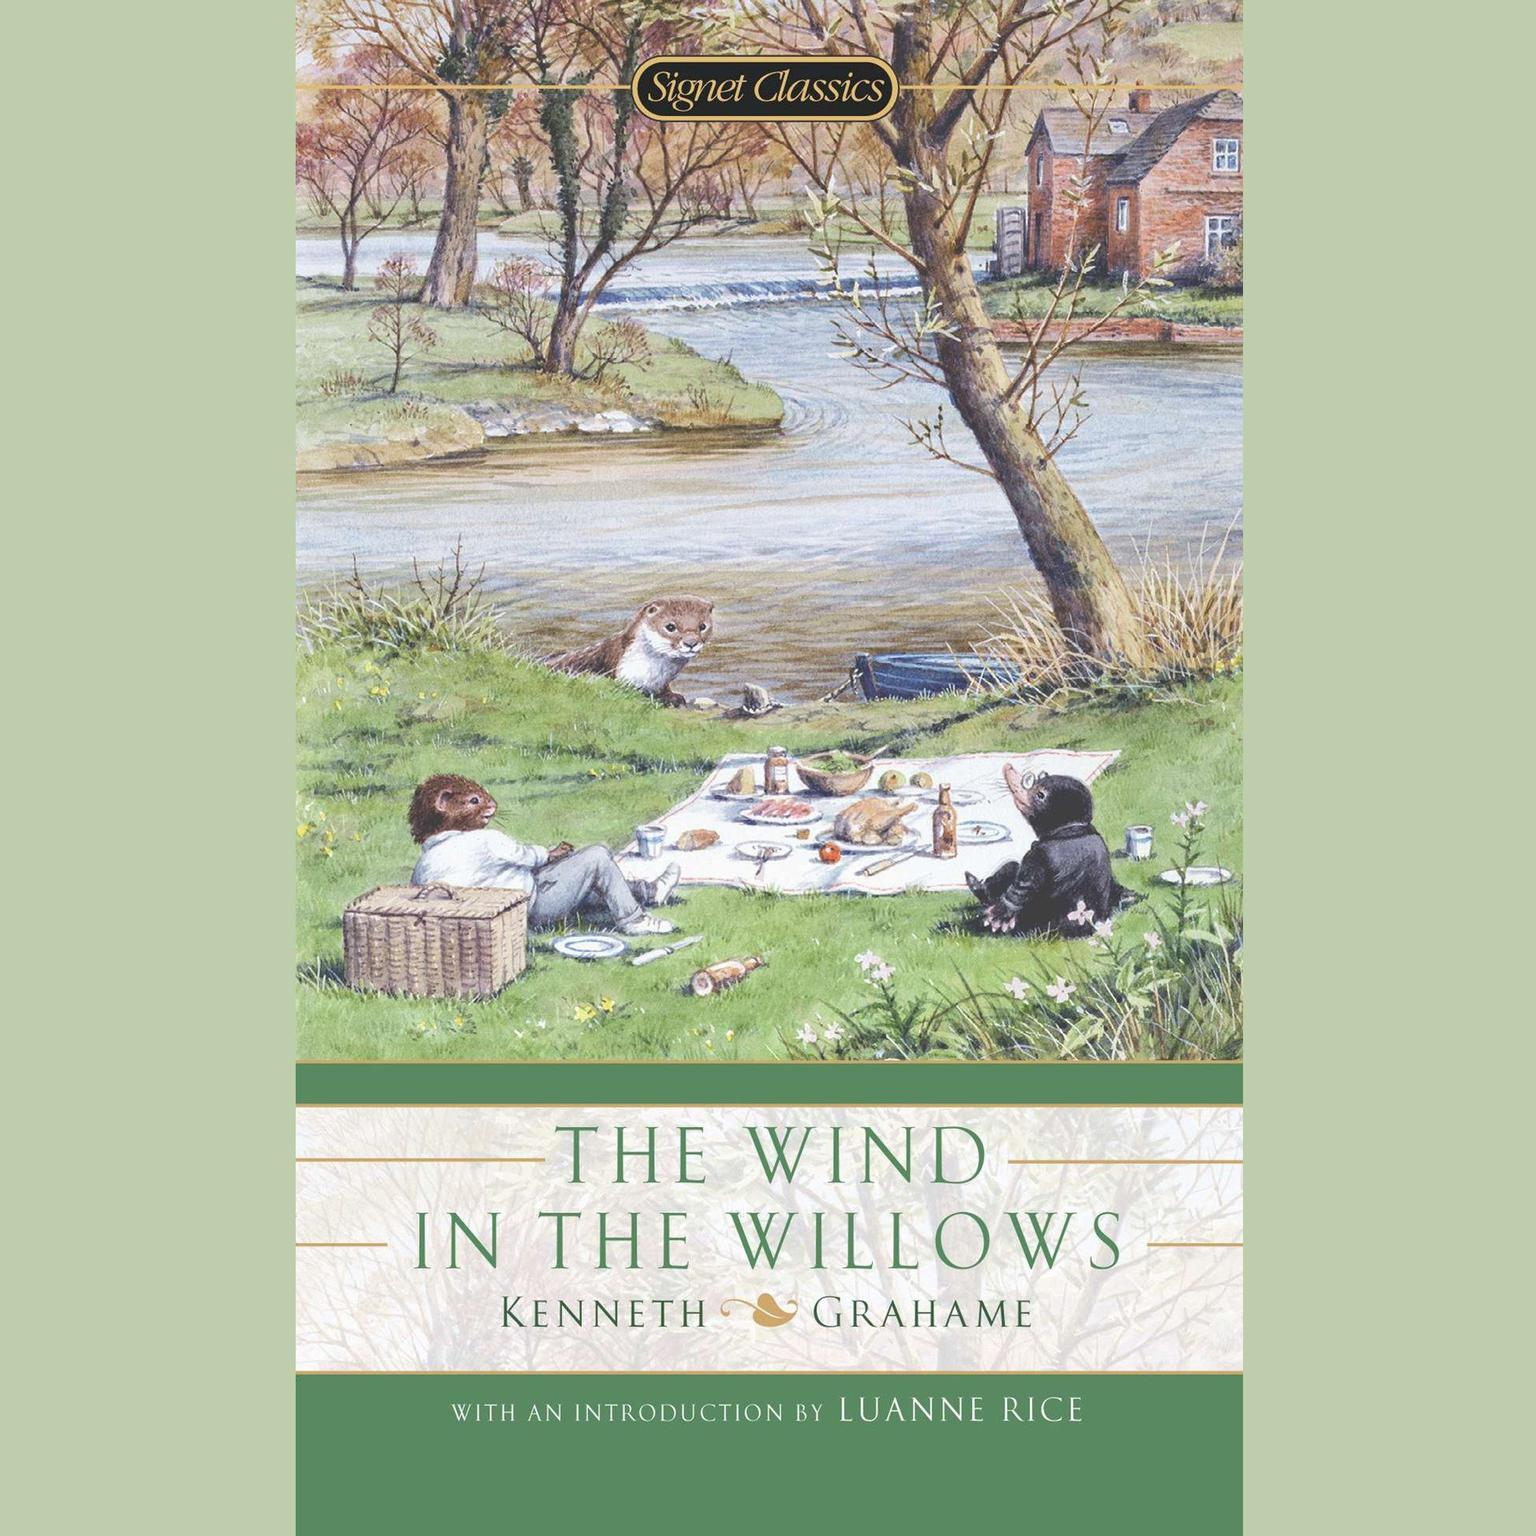 The Wind in the Willows (Abridged) Audiobook, by Kenneth Grahame